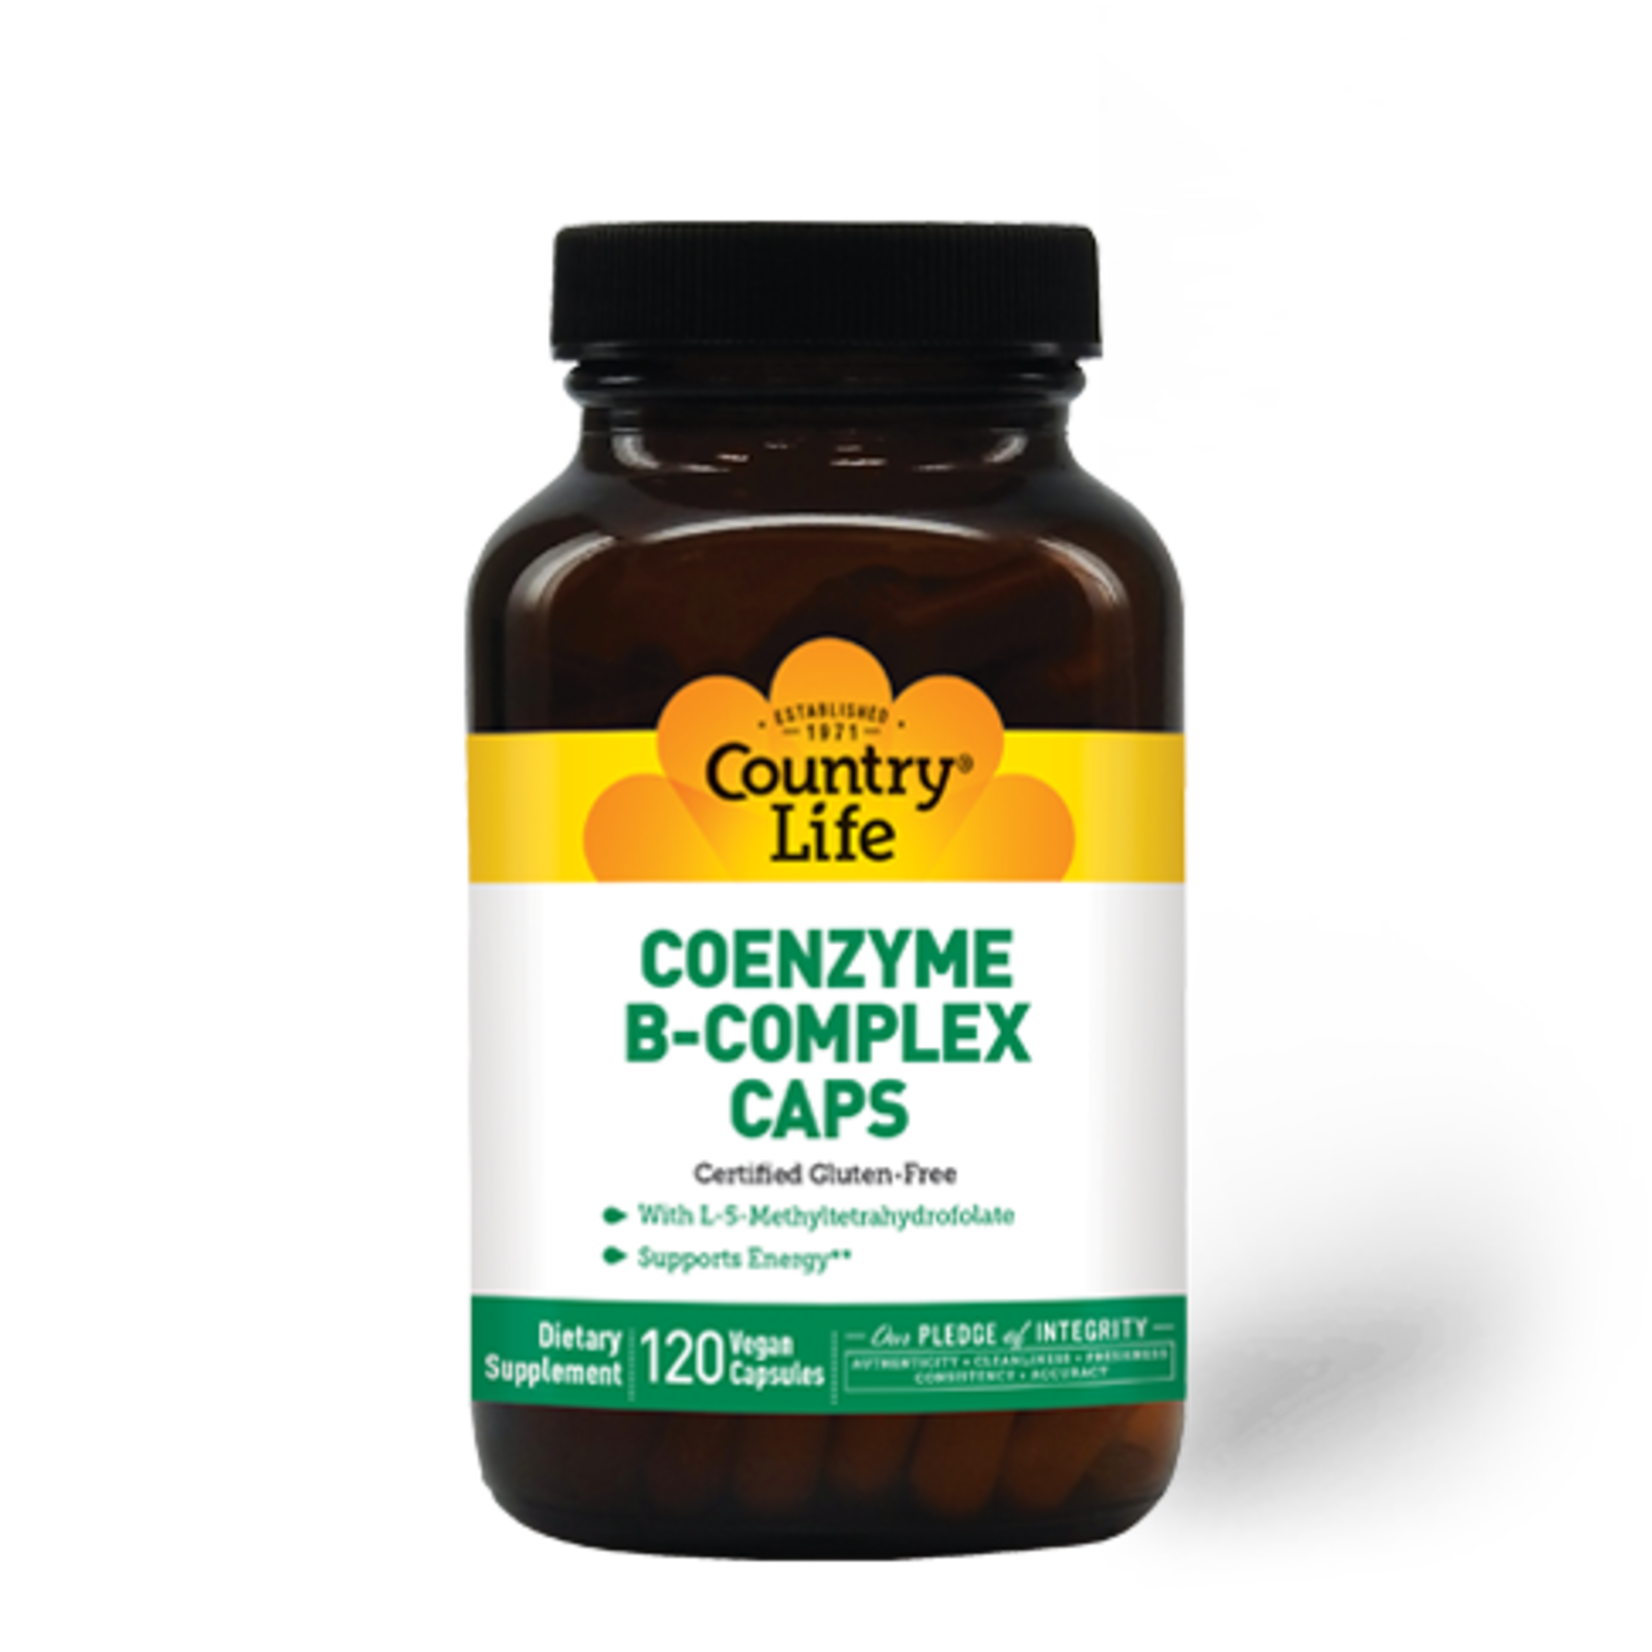 Country Life Country Life Coenzyme B-Complex Caps